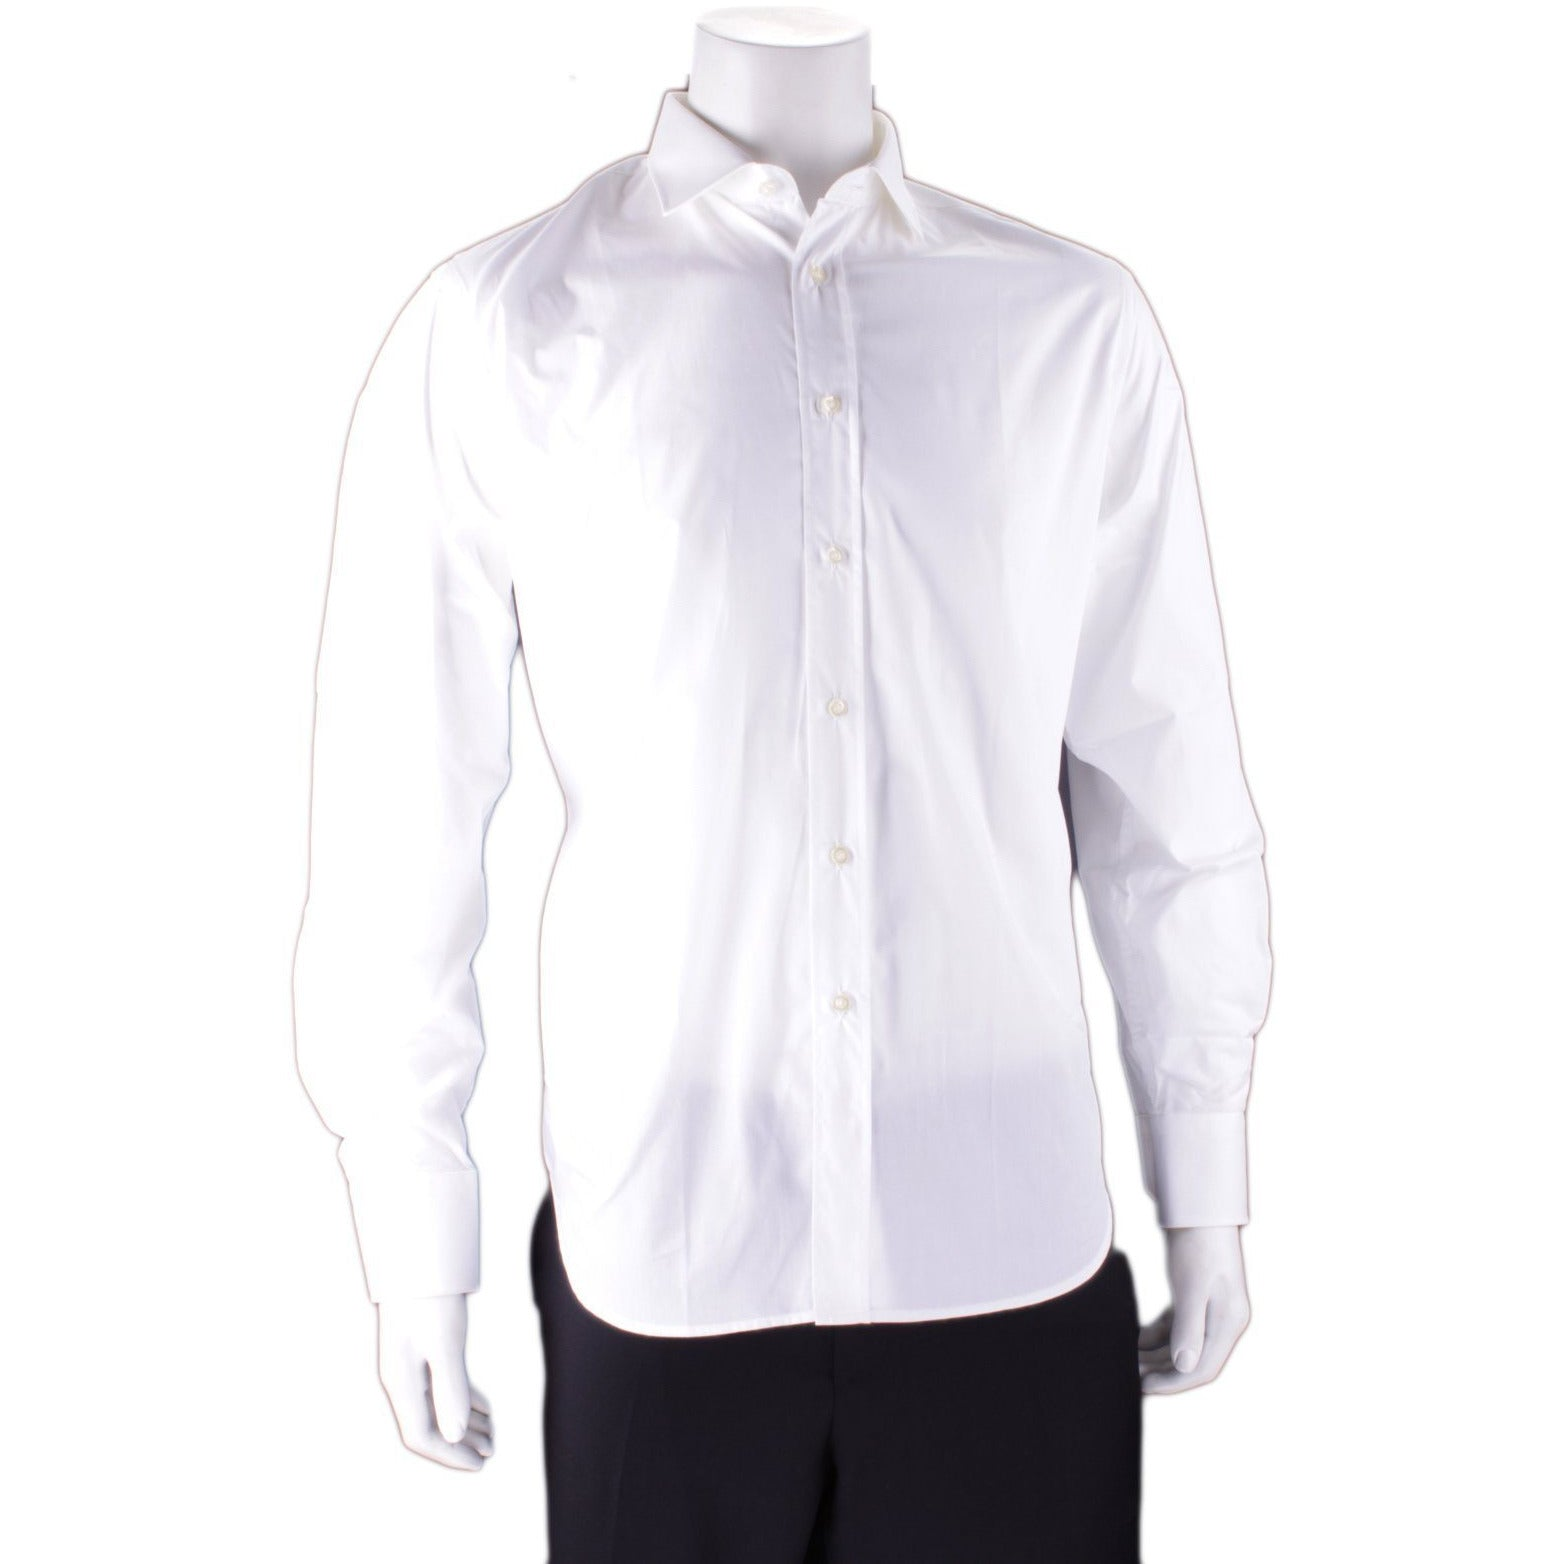 Pierre Balmain Camicia Uomo Ml Collo Francese MENS DRESS SHIRT Pierre Balmain